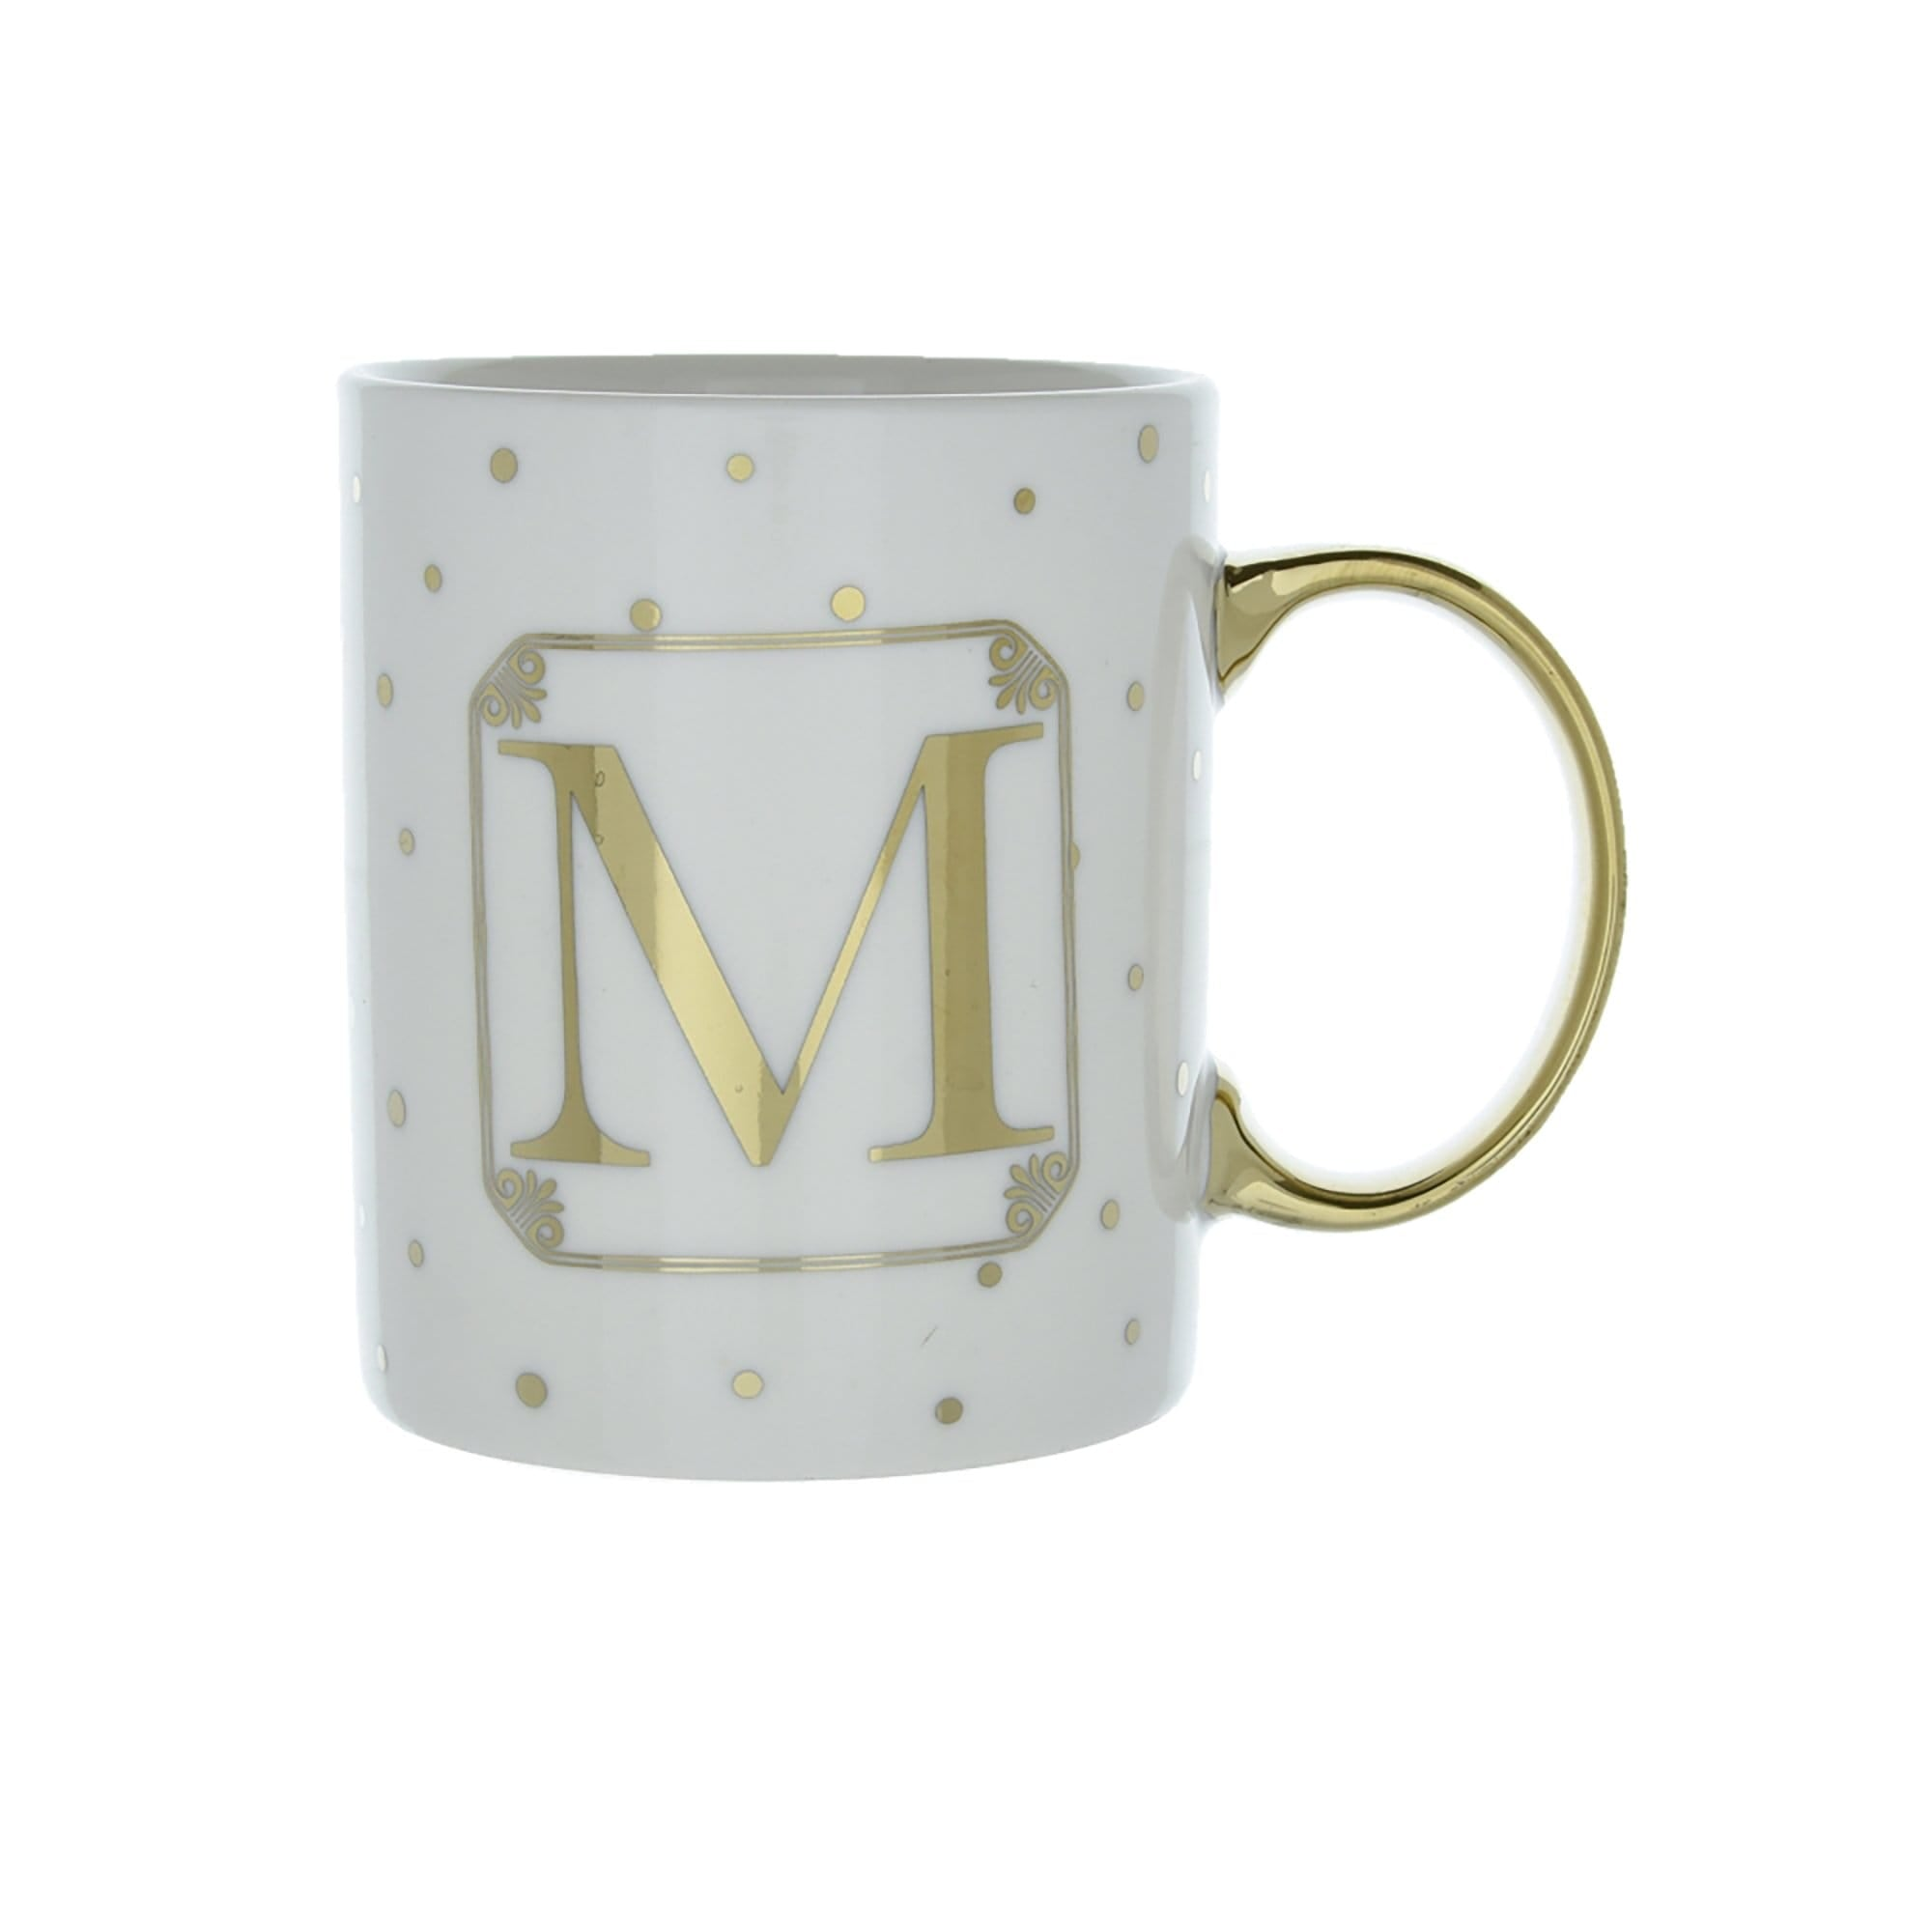 Candlelight Home Mugs Initial Straight Sided Mug M Gold 8cm 6PK